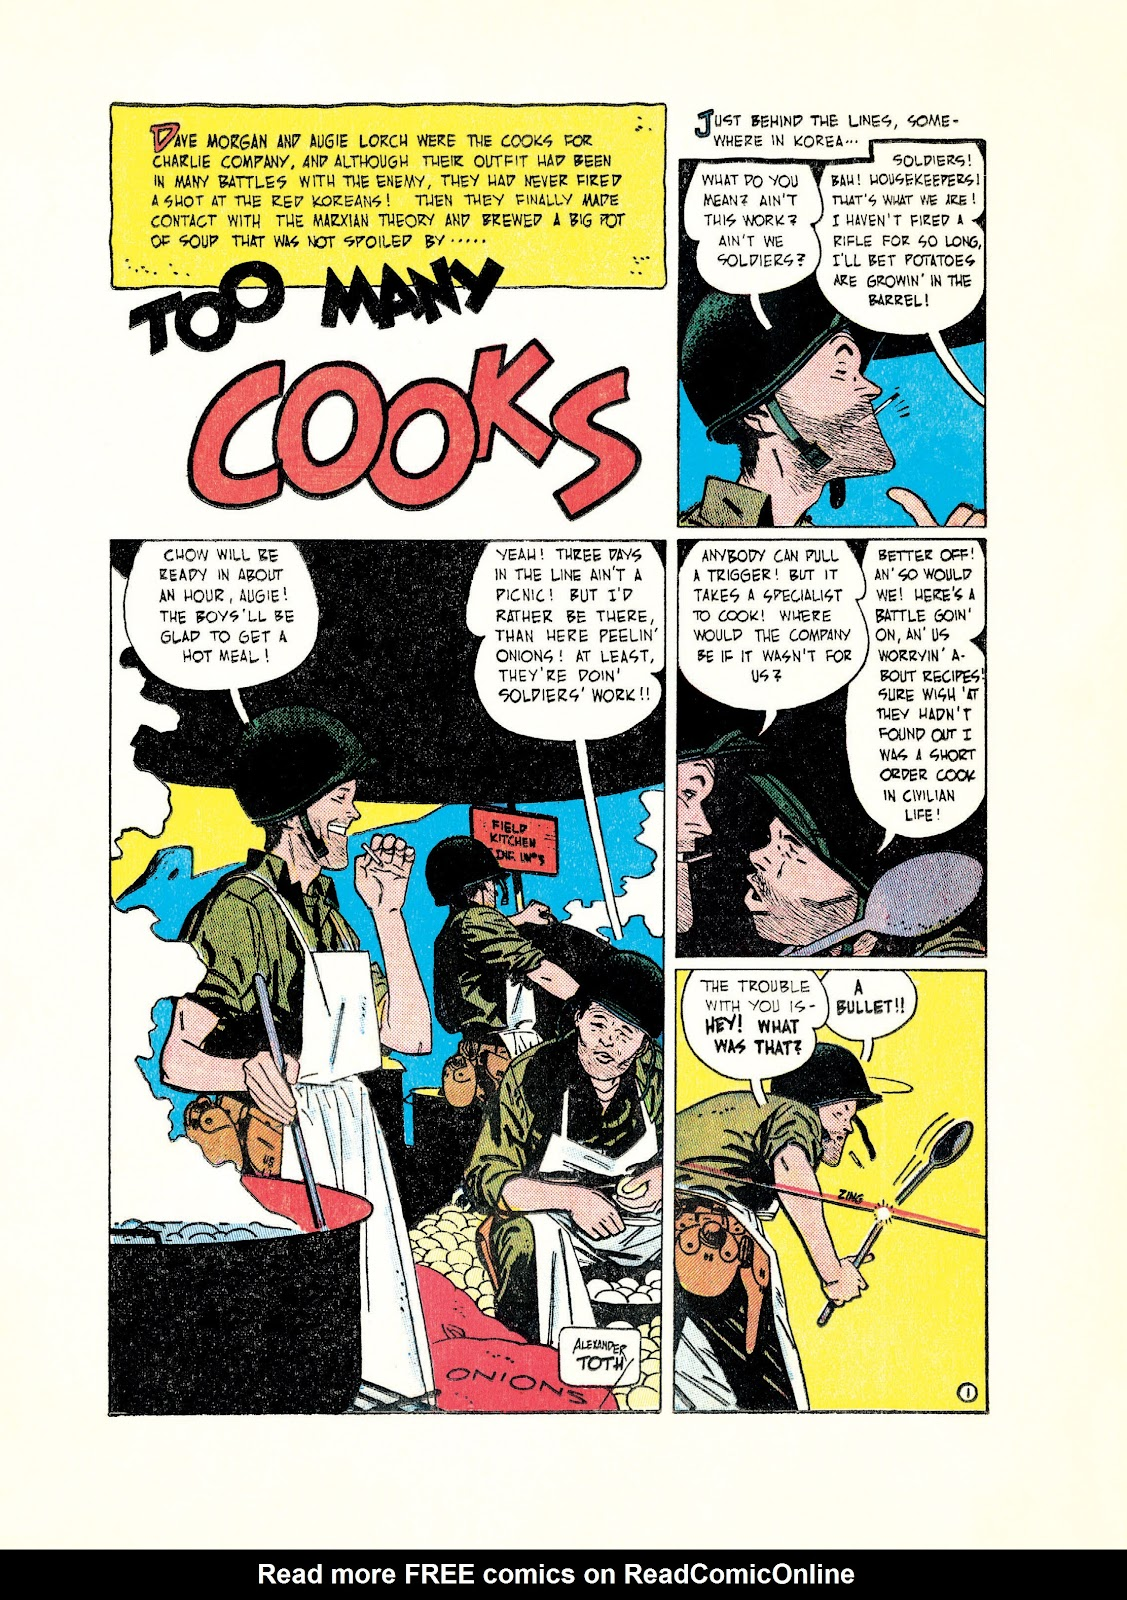 Read online Setting the Standard: Comics by Alex Toth 1952-1954 comic -  Issue # TPB (Part 2) - 47